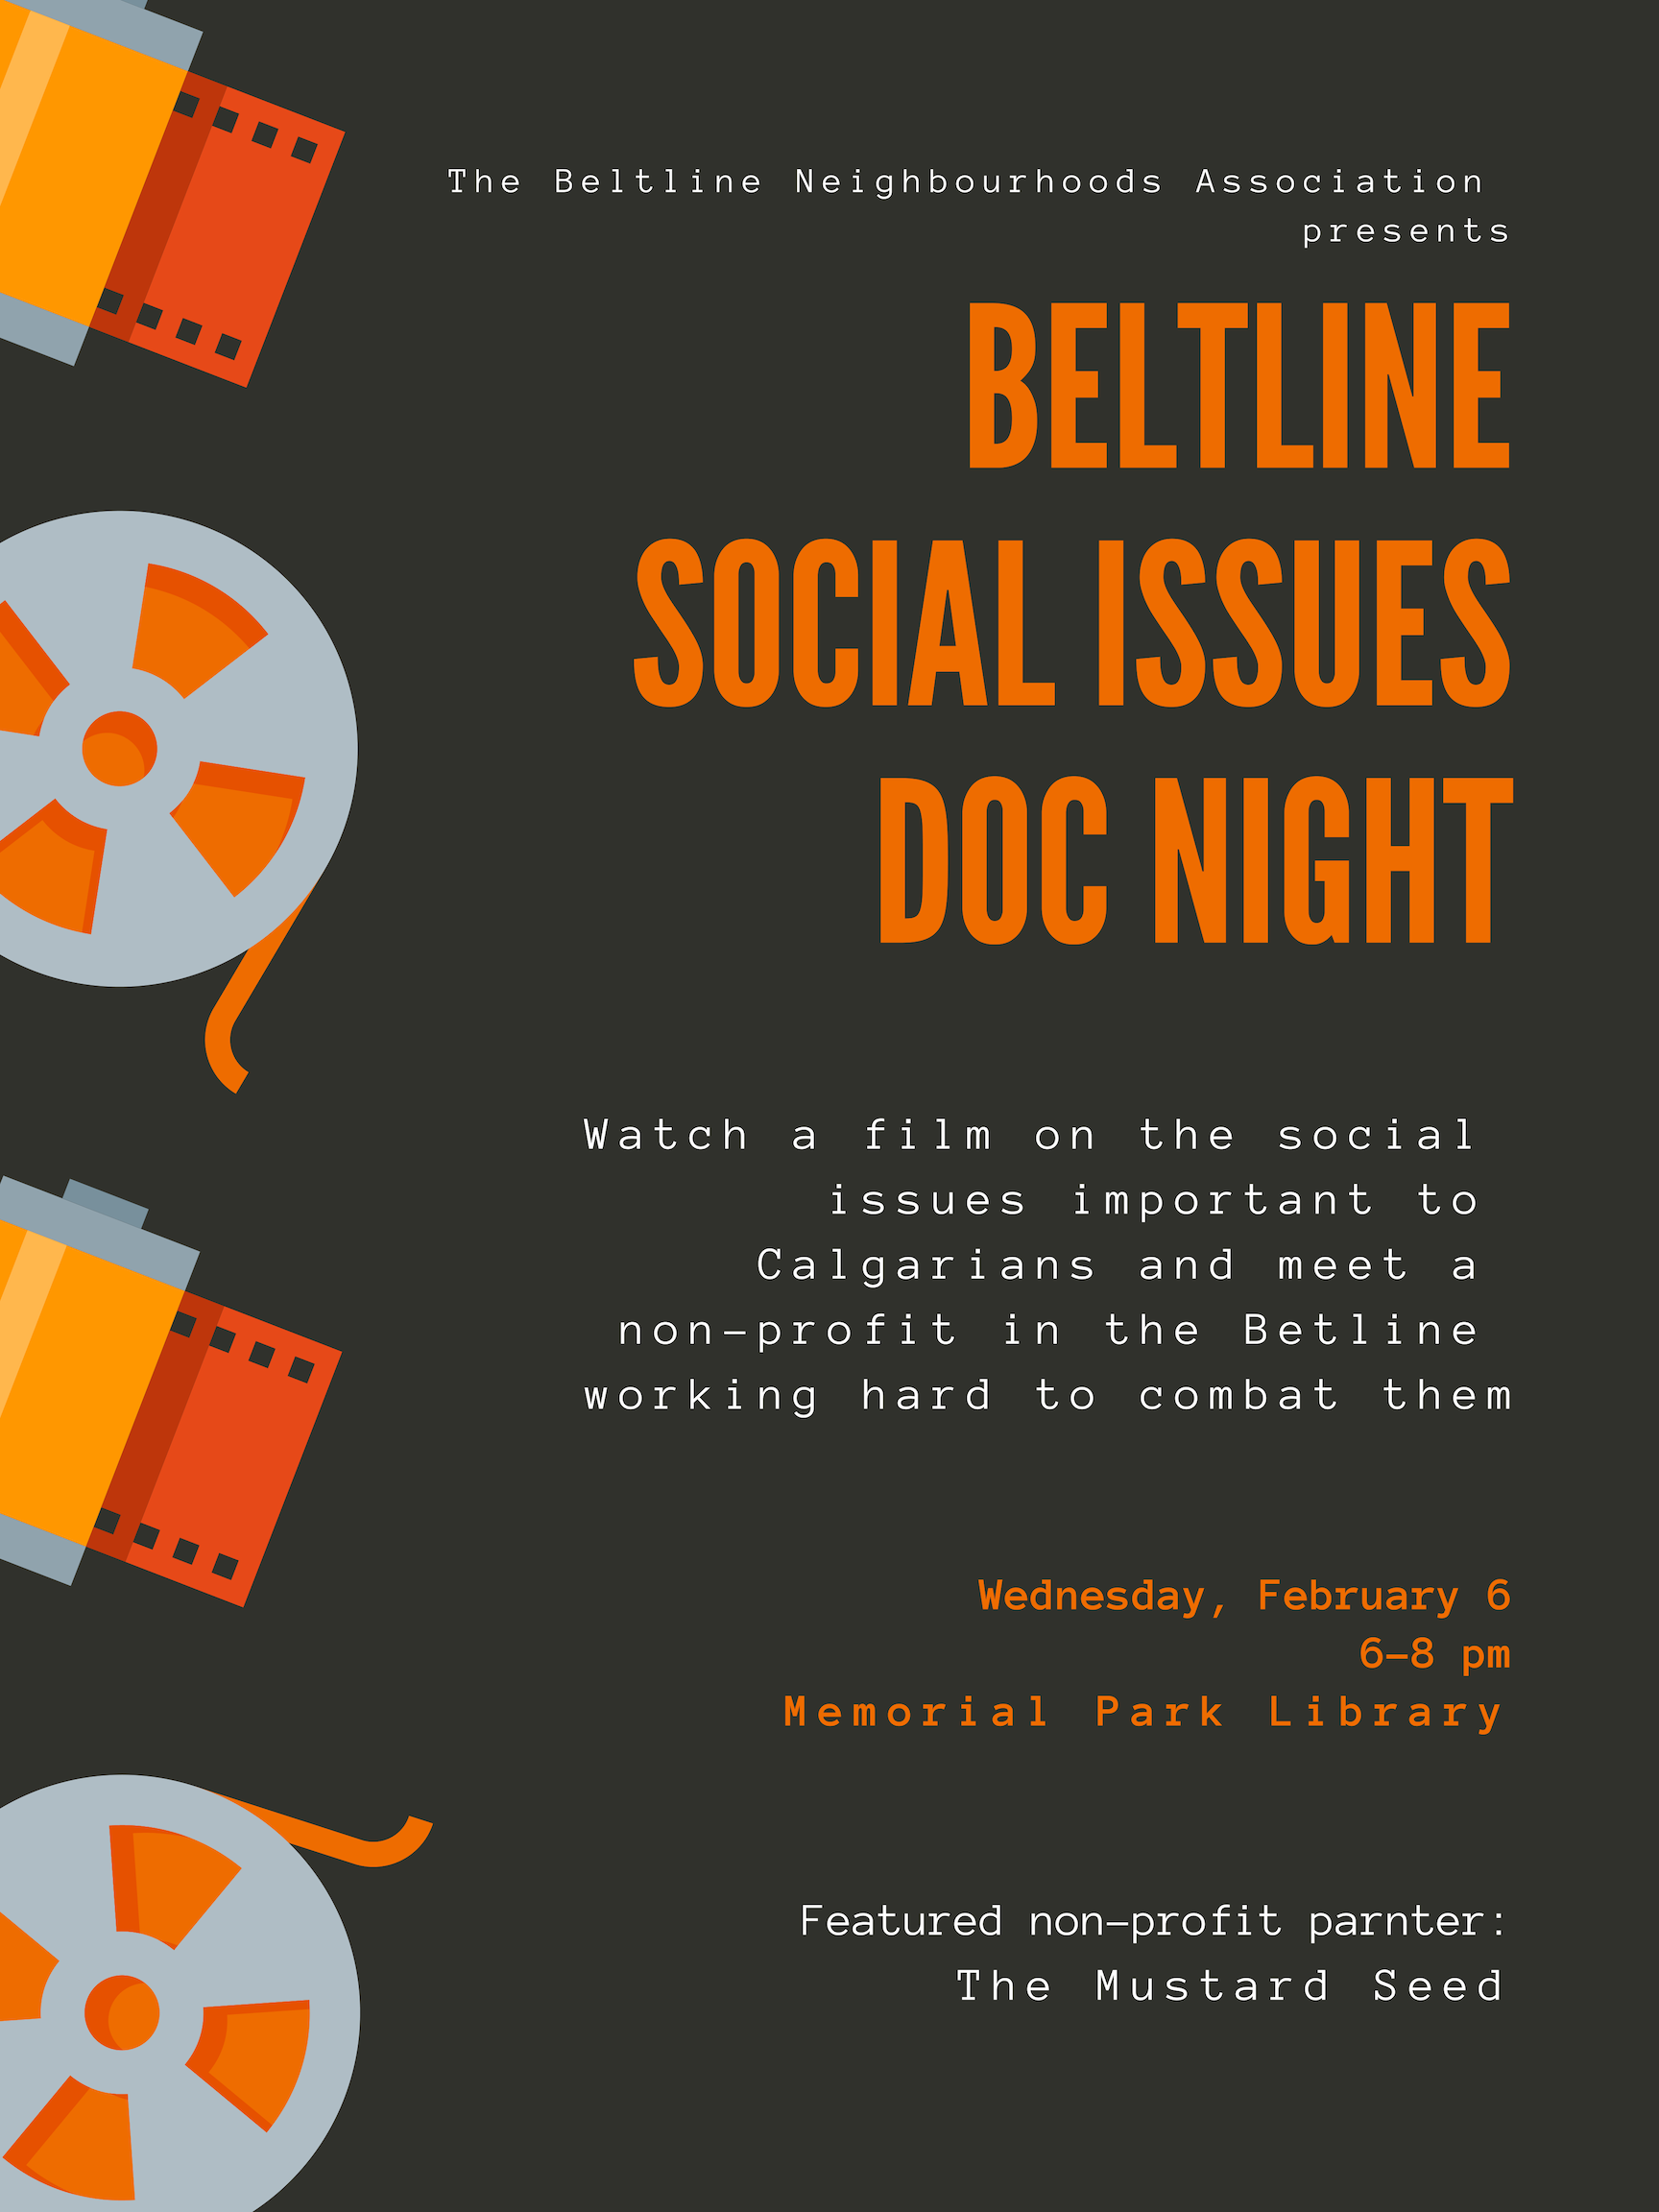 Beltline Social Issues Doc Night Beltline Neighbourhoods Association